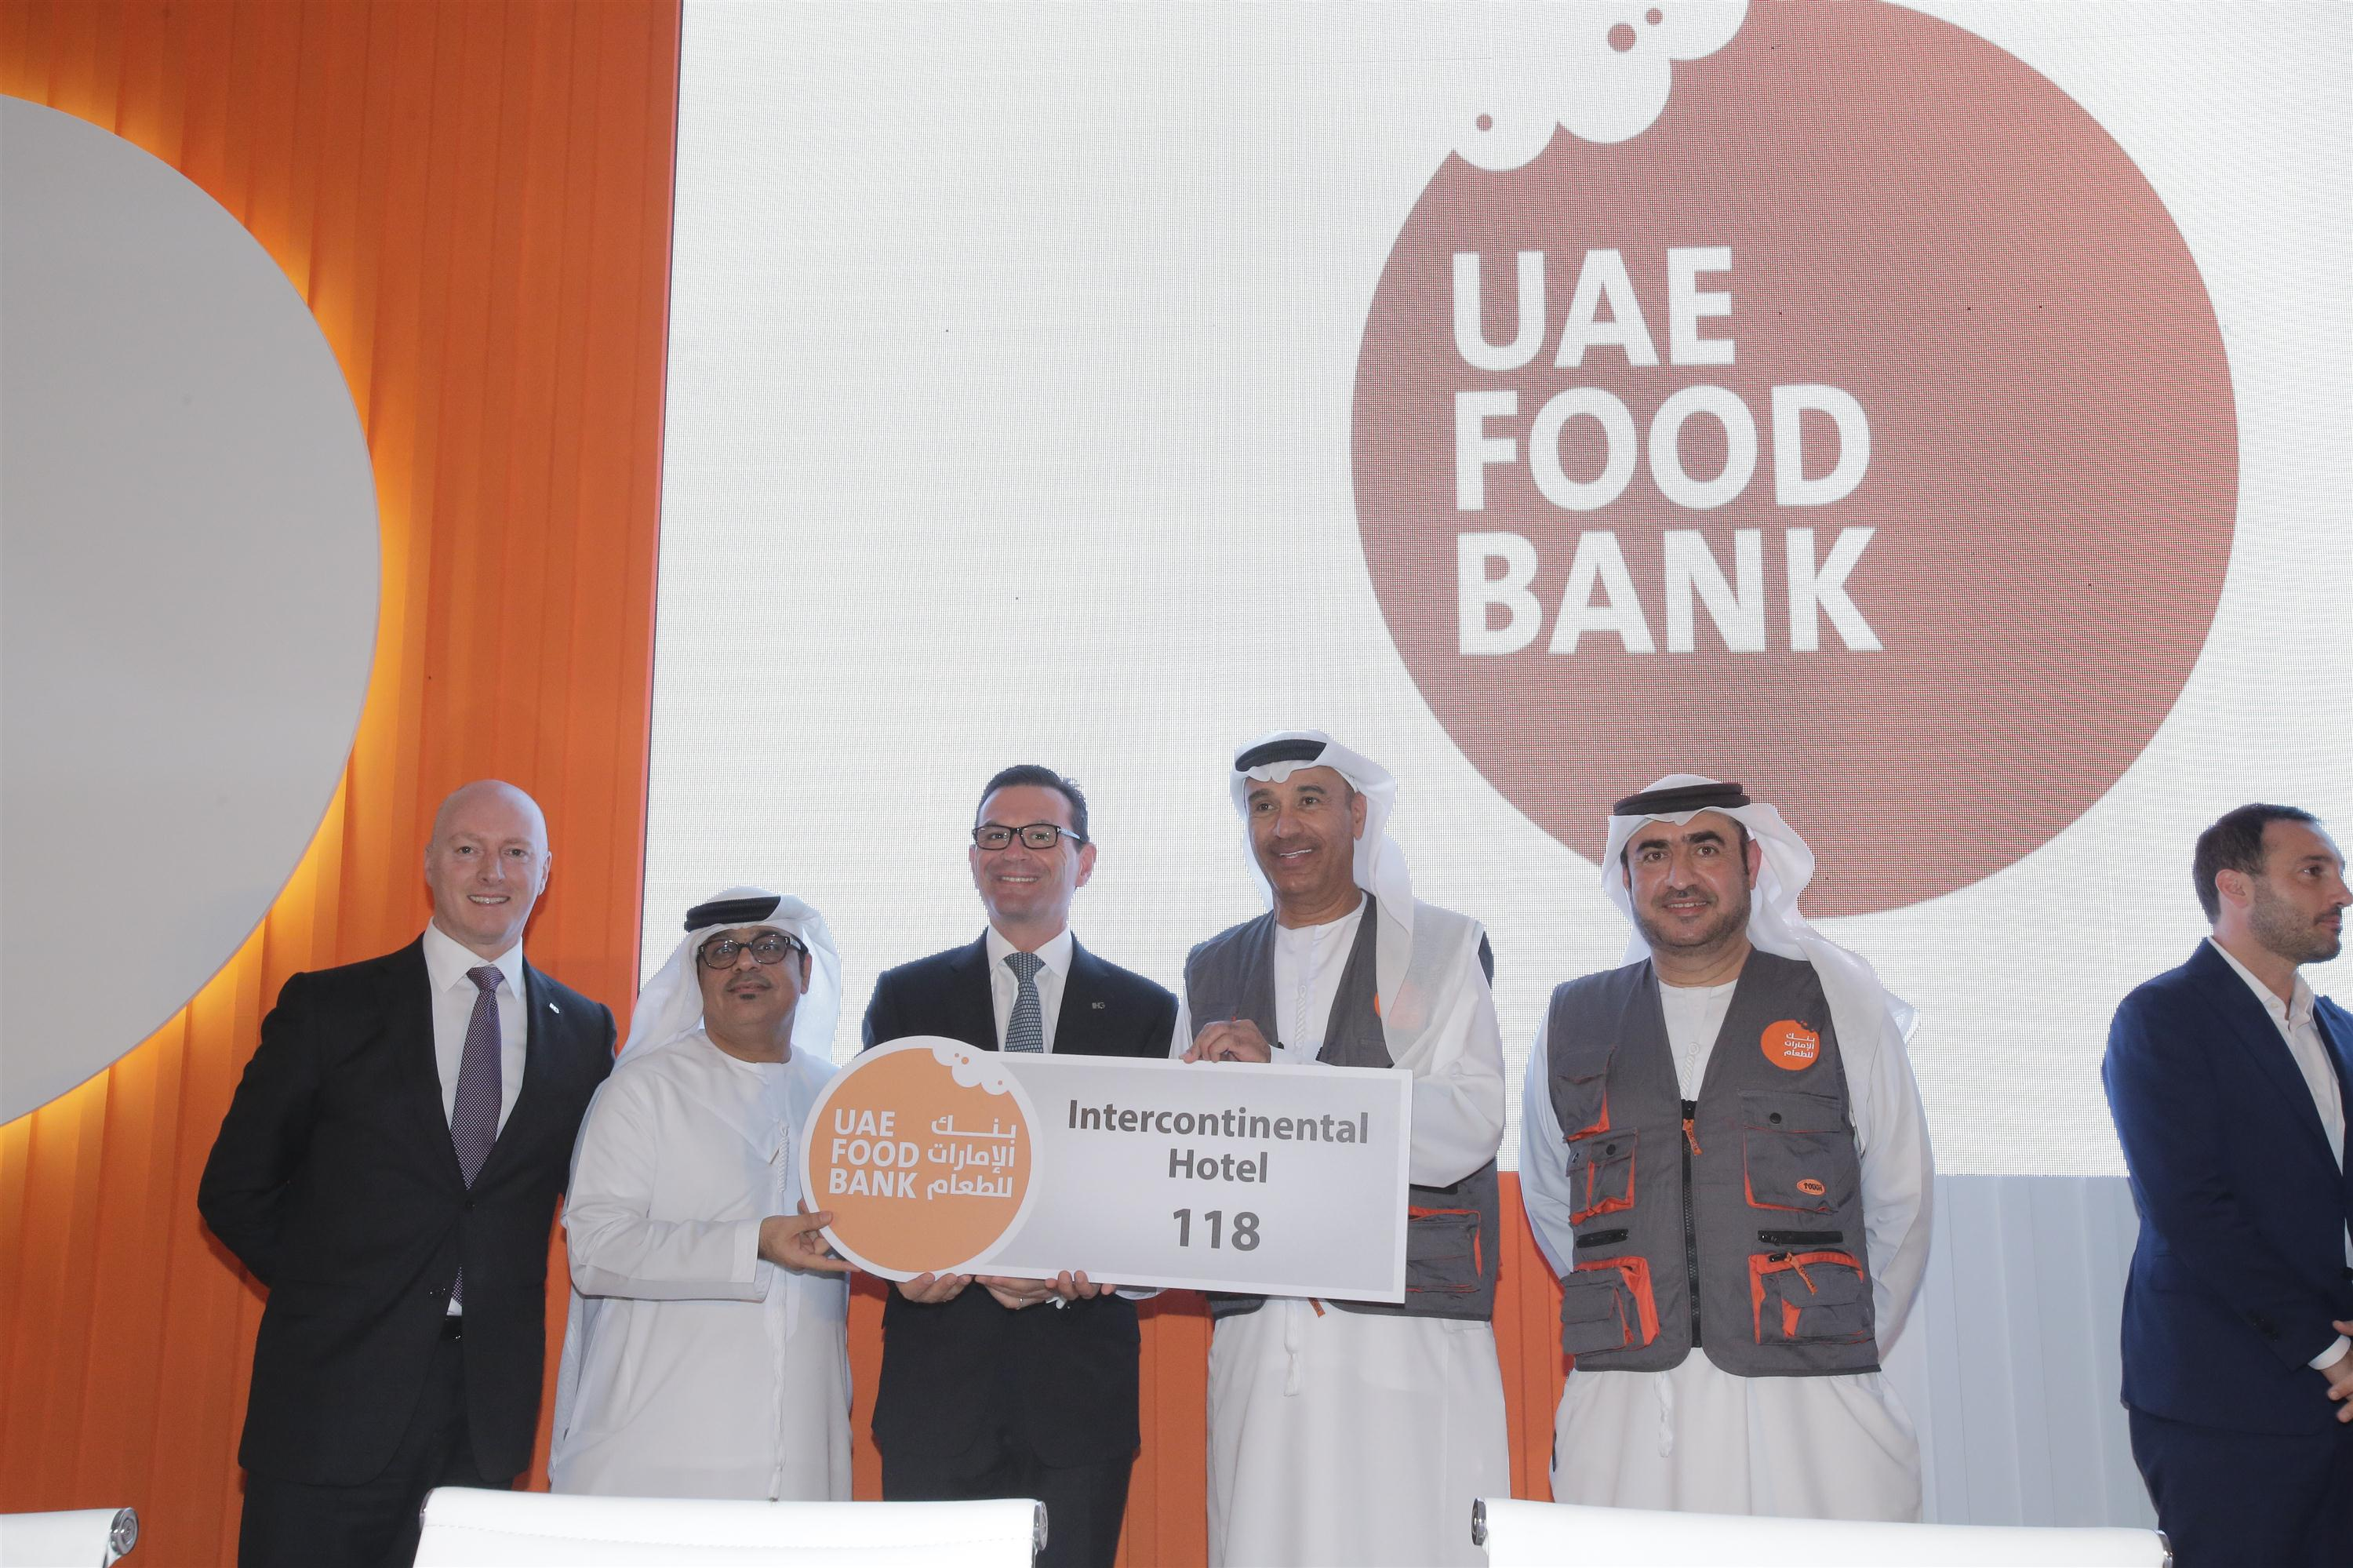 dubai municipality opens first uae foodbank branch3.jpg